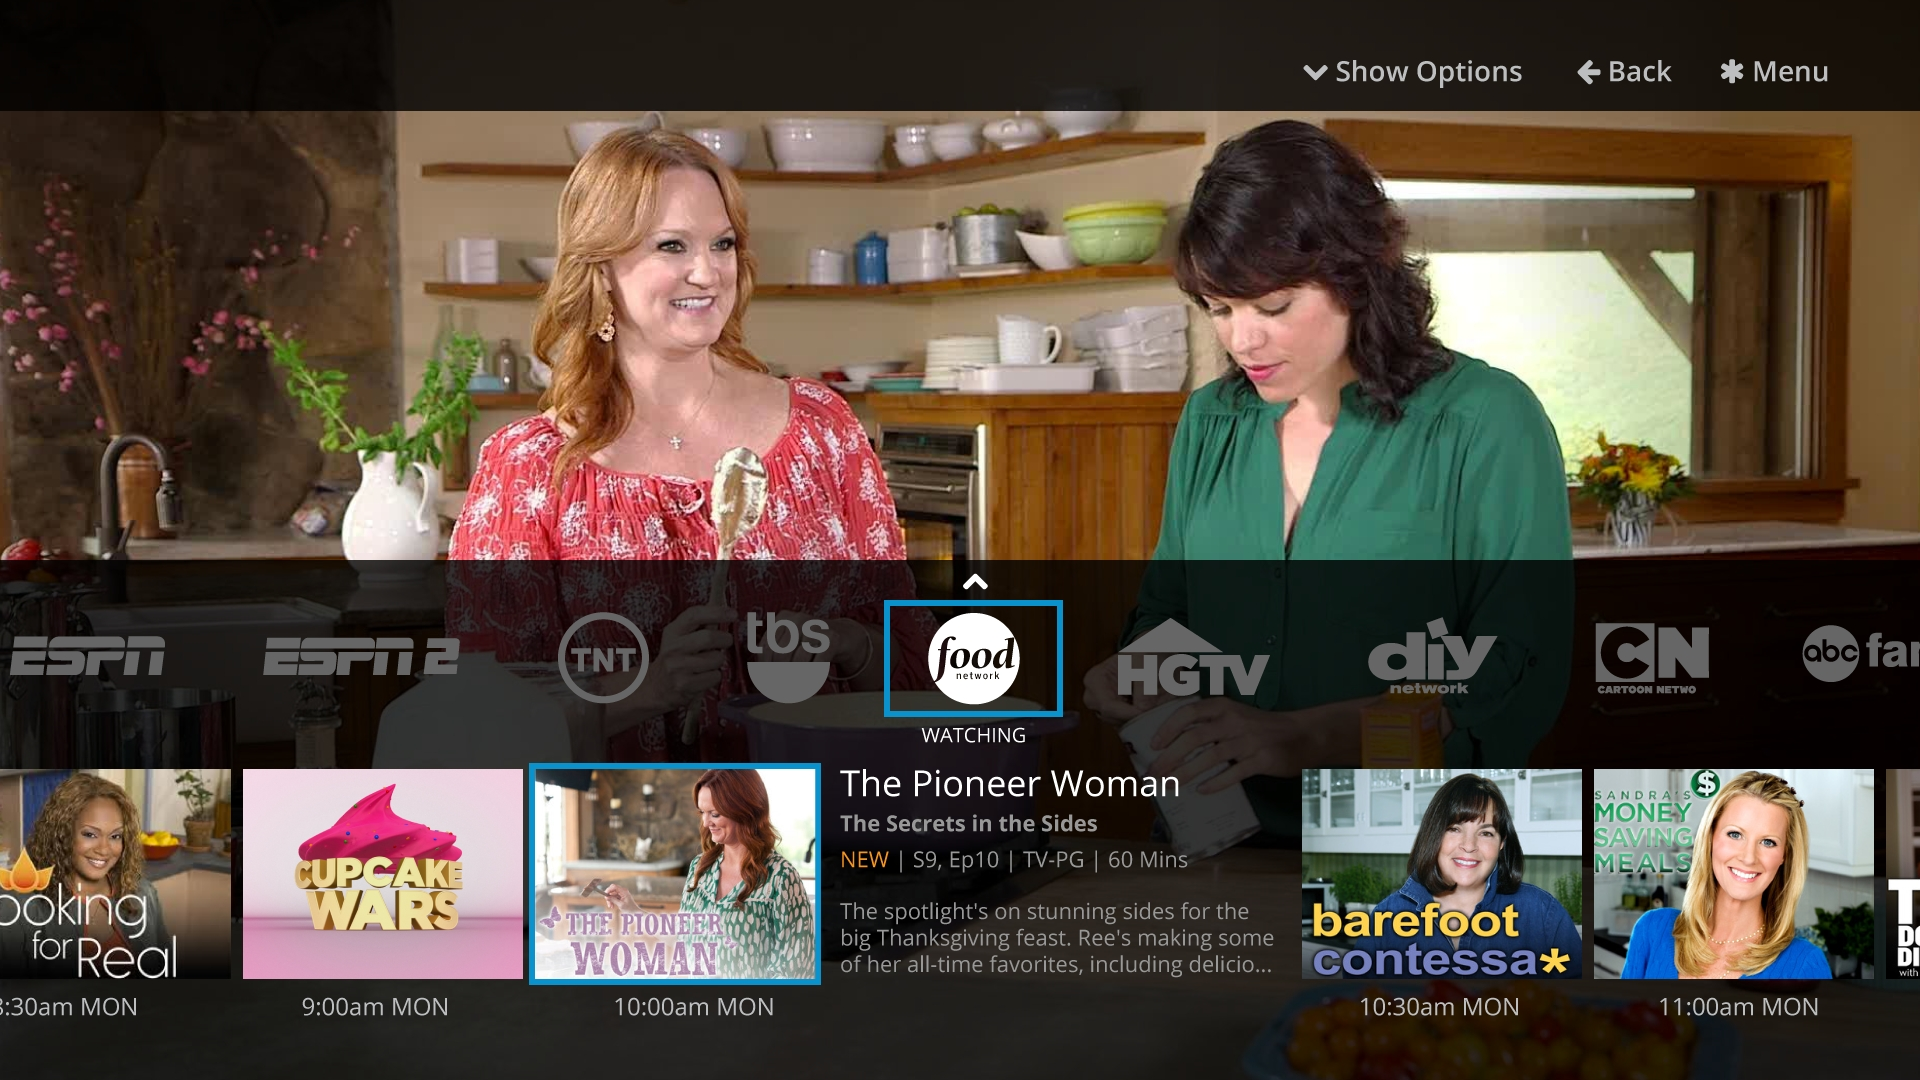 Sling TV to Launch Live, Over-the-Top Service for $20 Per Month